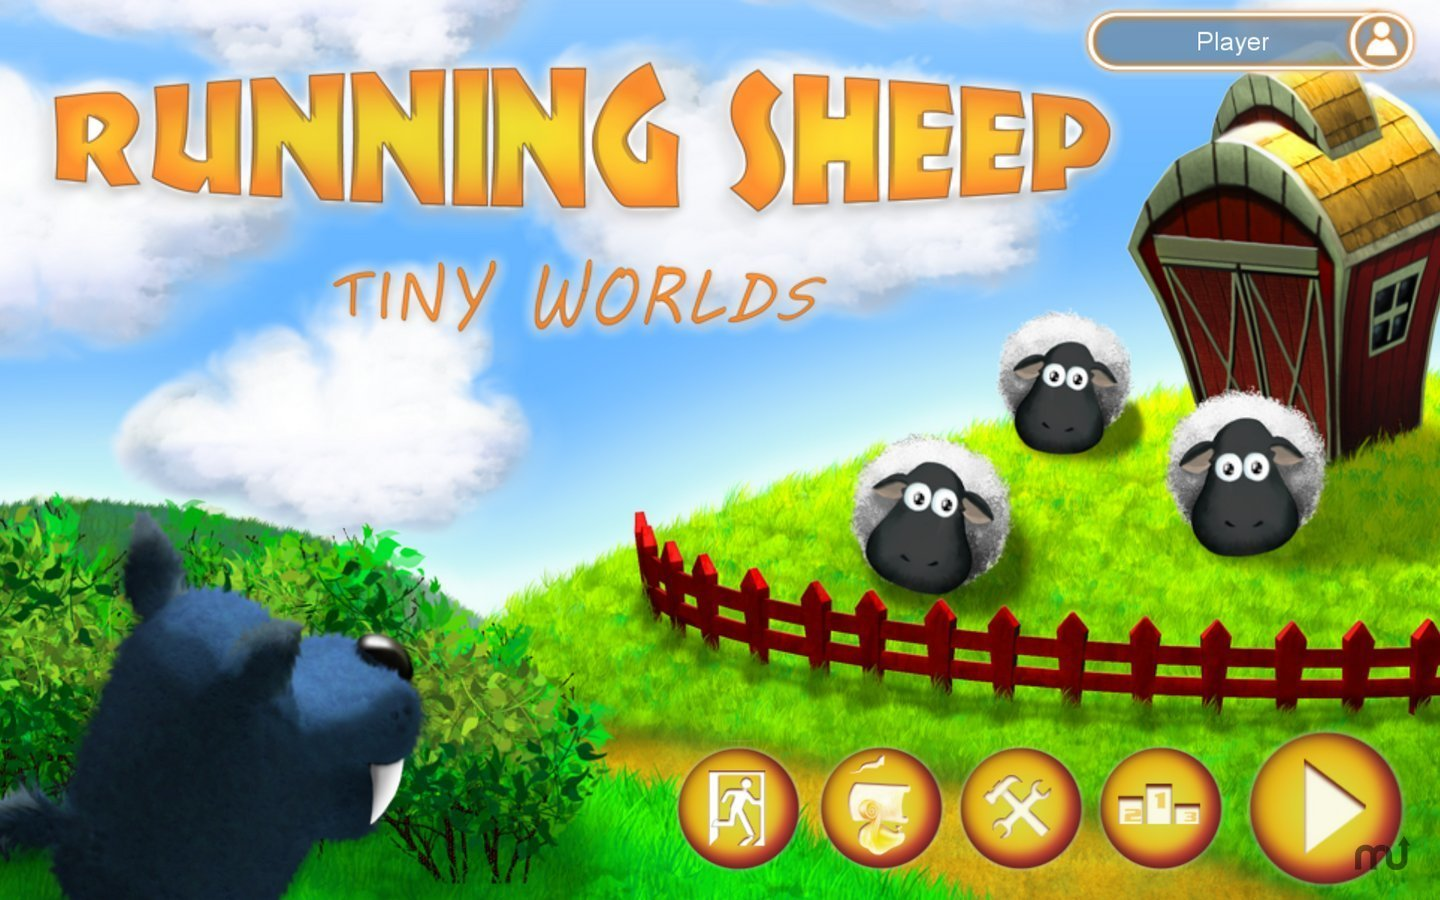 Screenshot 1 for Running Sheep: Tiny Worlds